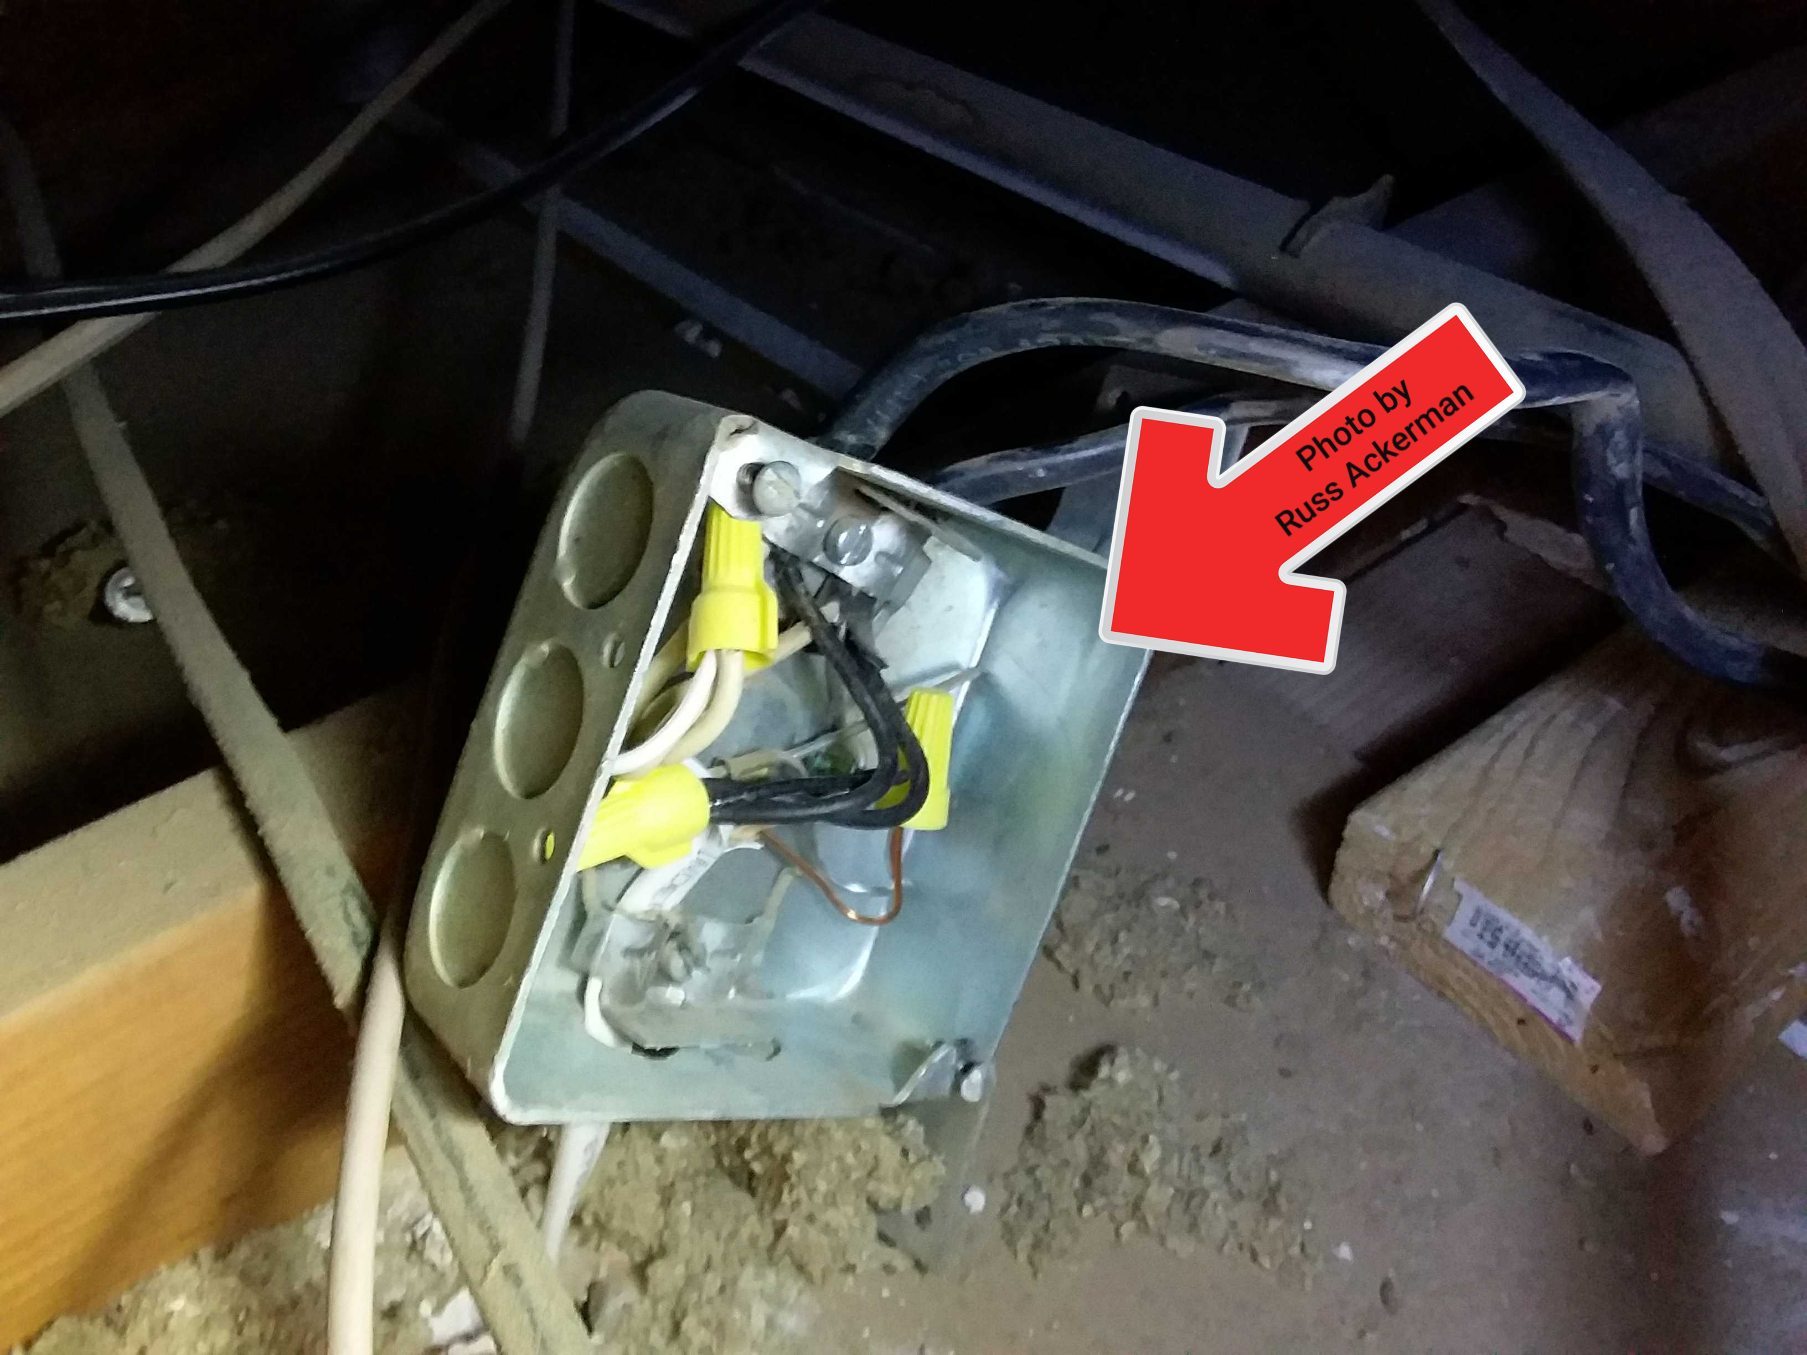 Sloppy workmanship. Uncovered and unsecured junction boxes are a safety hazard.